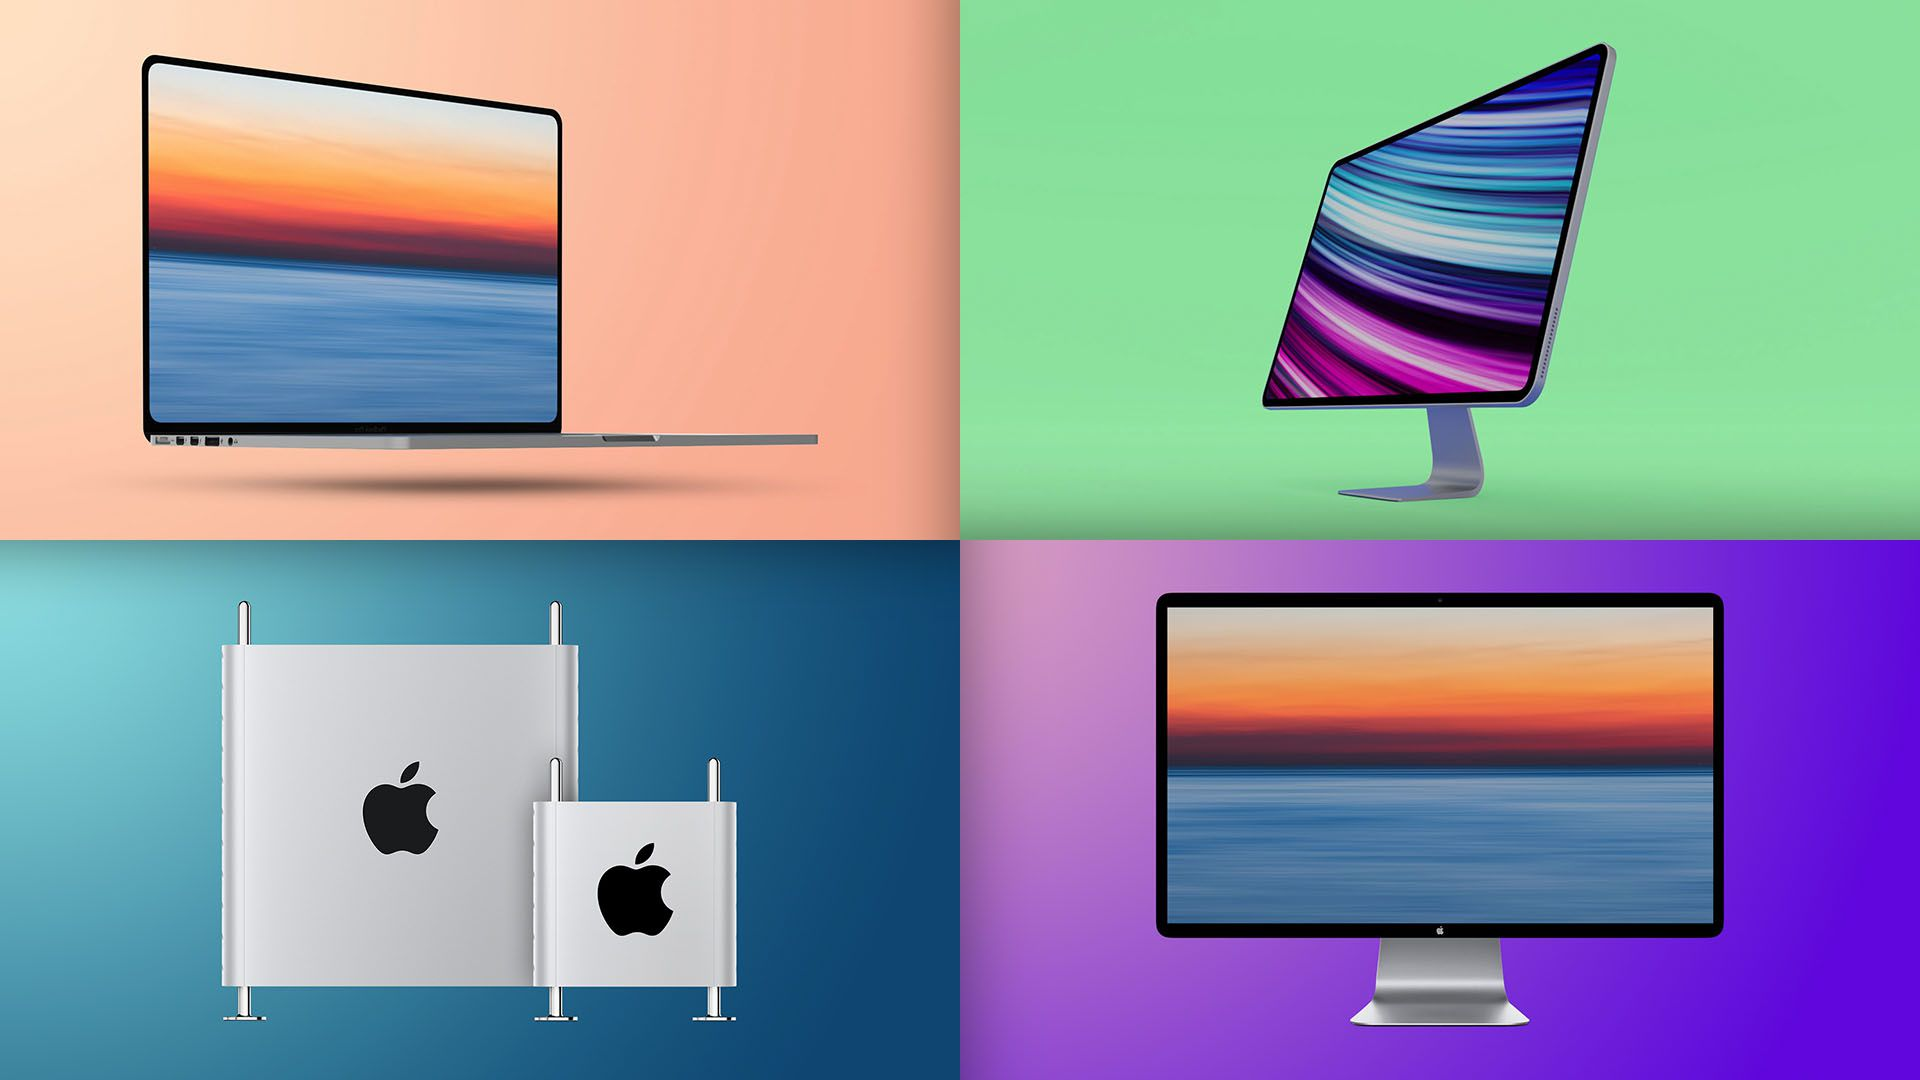 Top Stories: MacBook Pro, iMac, Mac Pro, and iPhone Rumors, Best of CES 2021